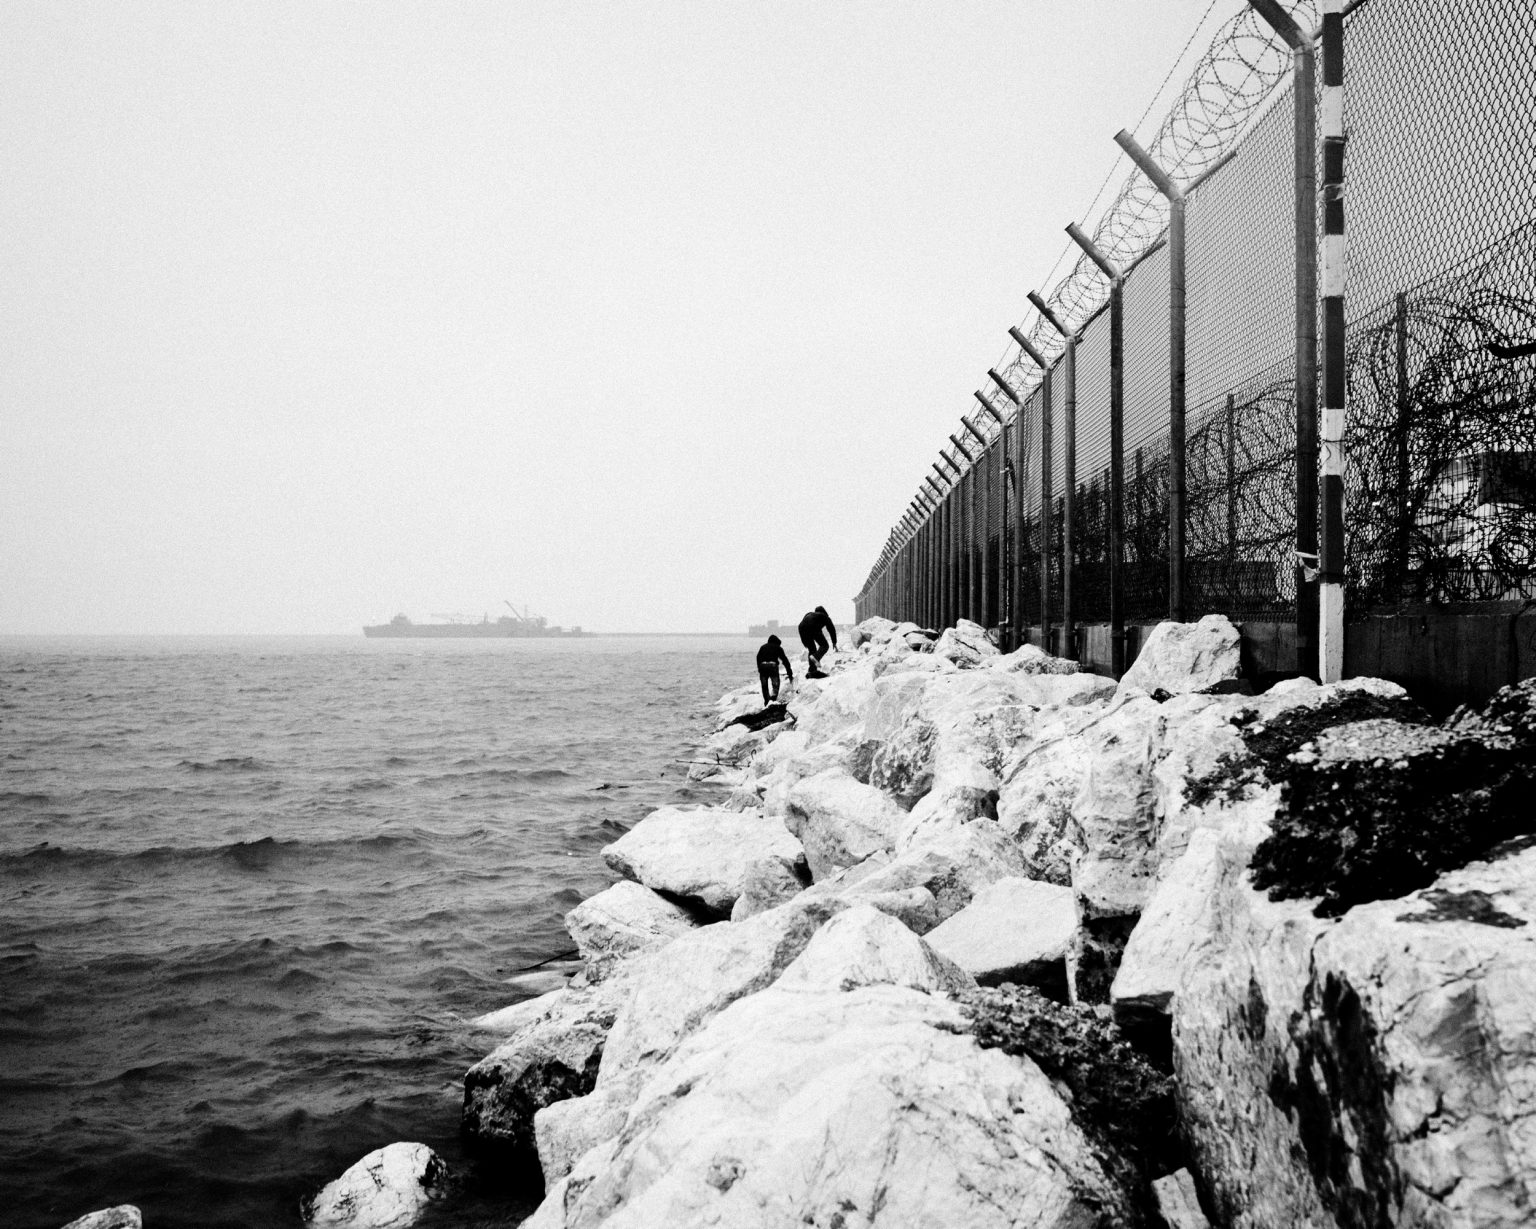 Afghan refugees during an attempt to cross fences dividing them from the embark area of Patra's harbour from where they will try to hide on a ship leaving to Italy. Patra, Greece. 2013